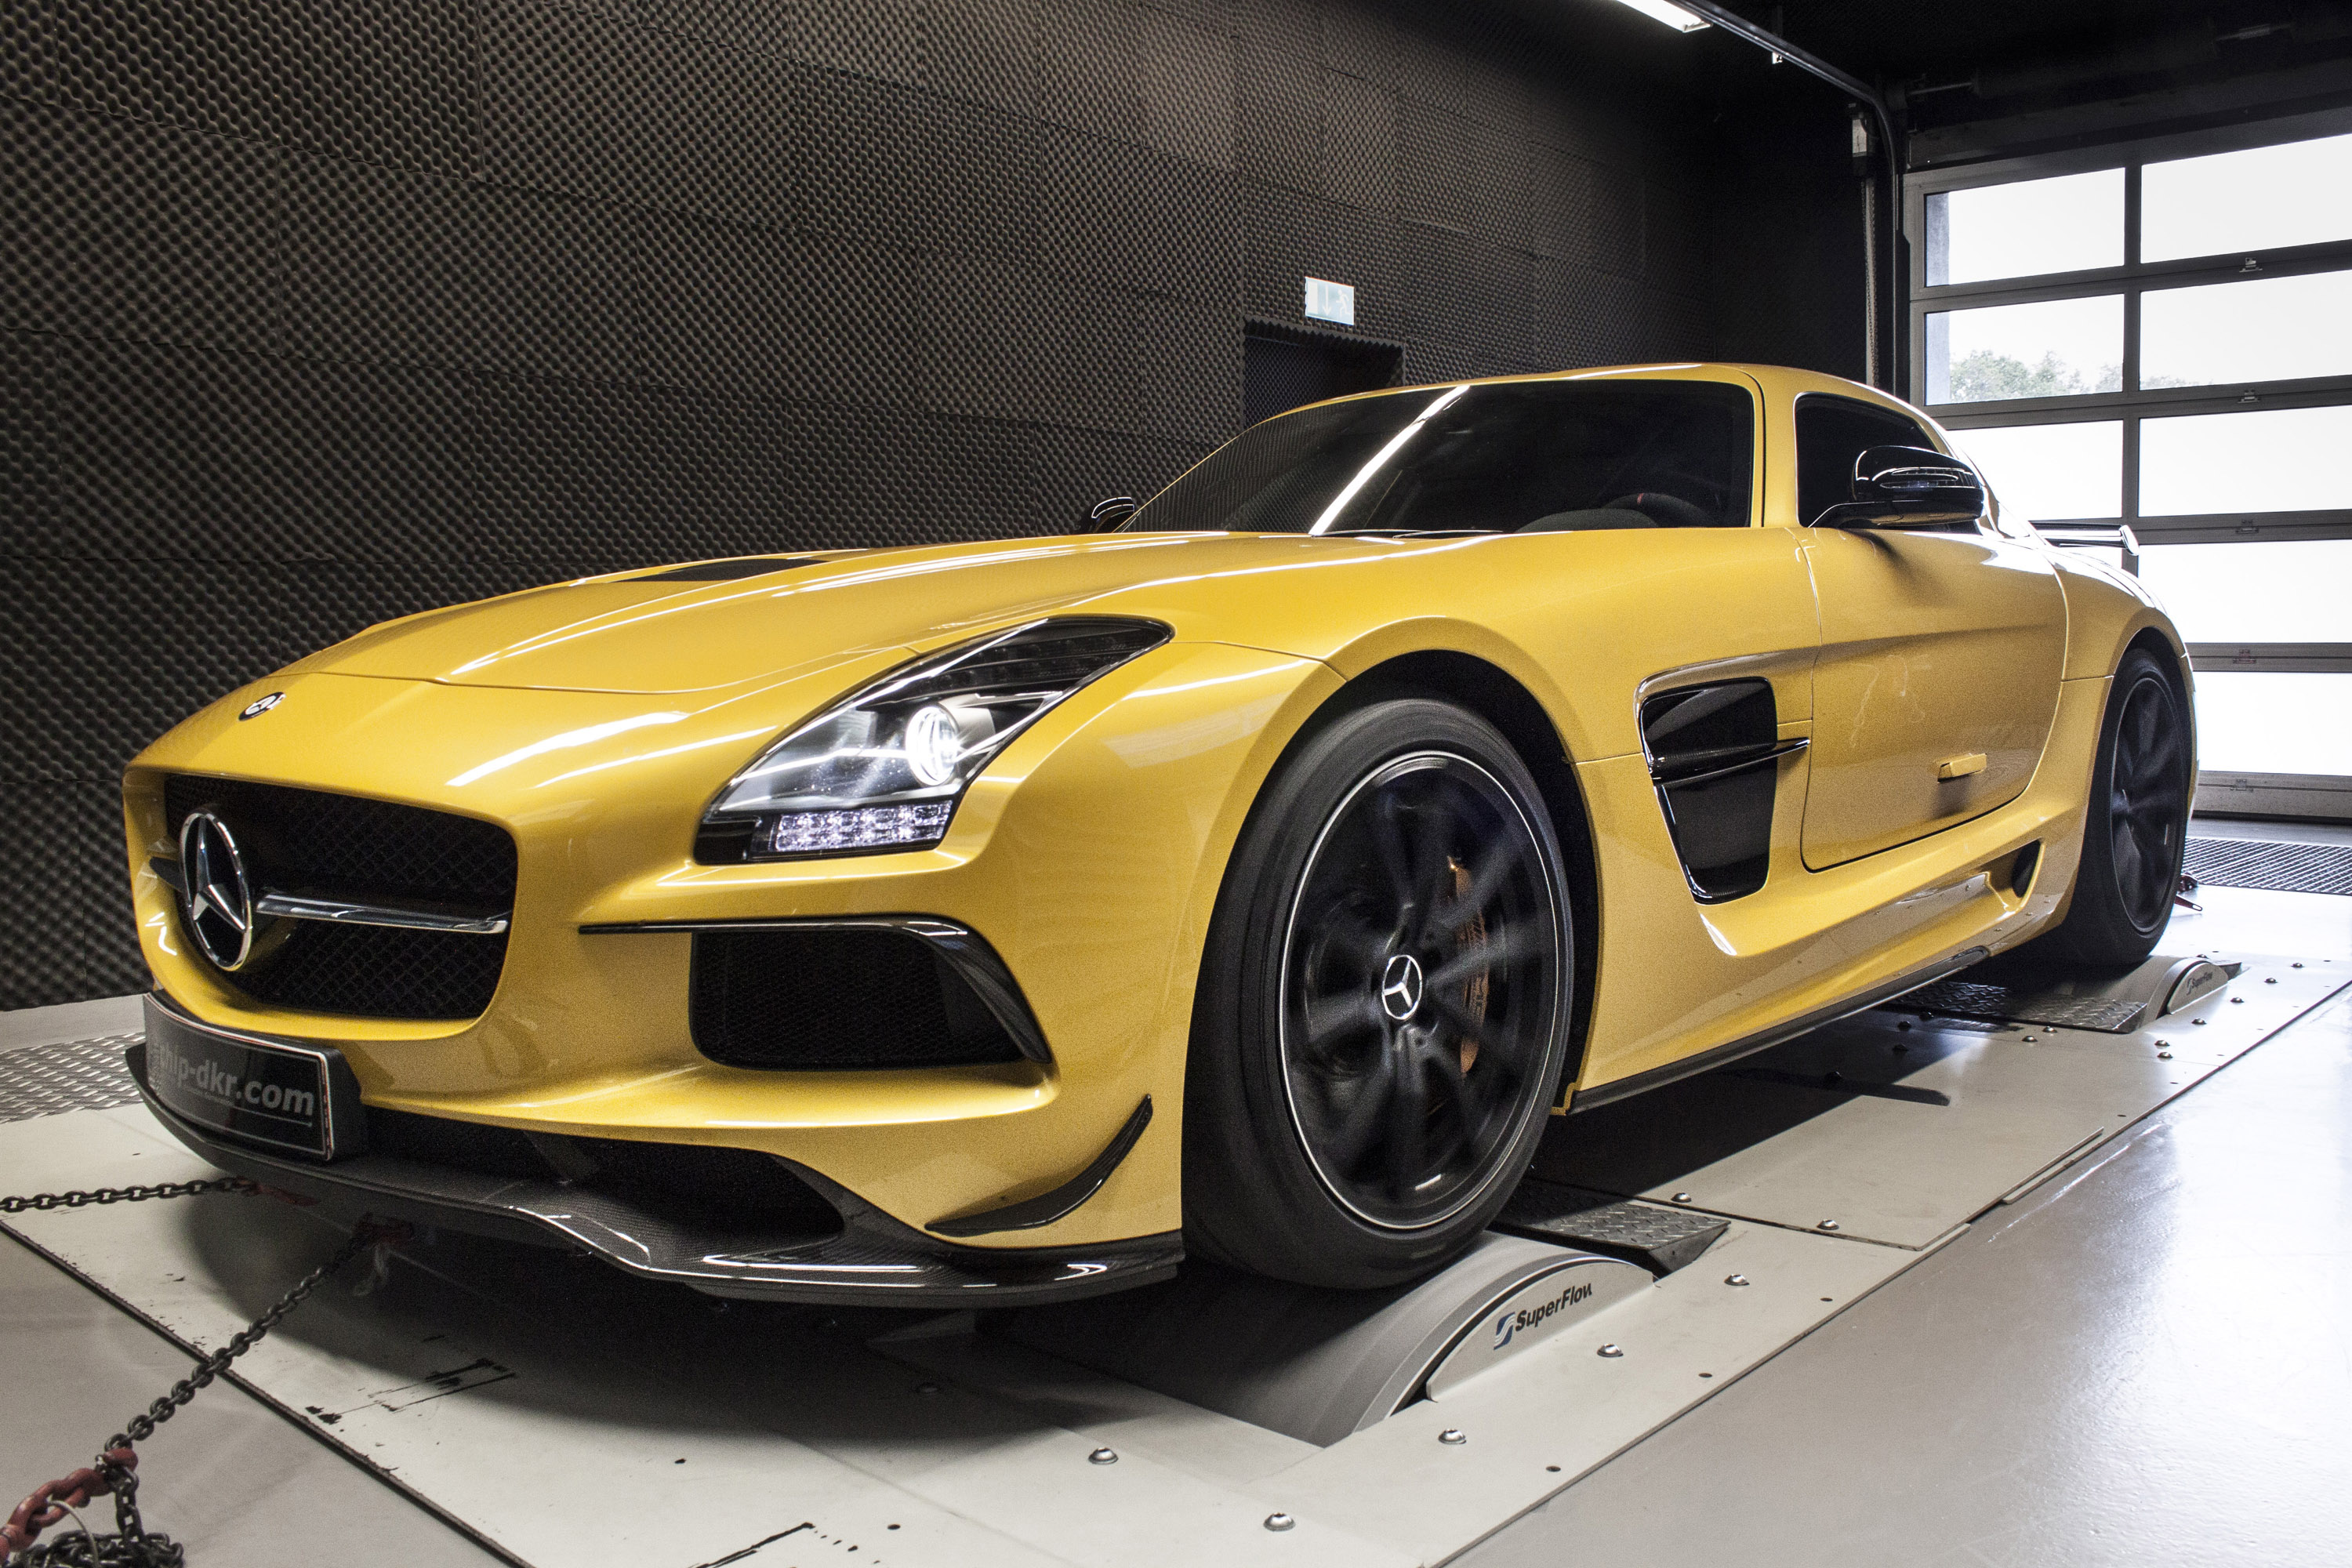 Mercedes Benz Sls 6 3 Amg Black Series Powered Up By